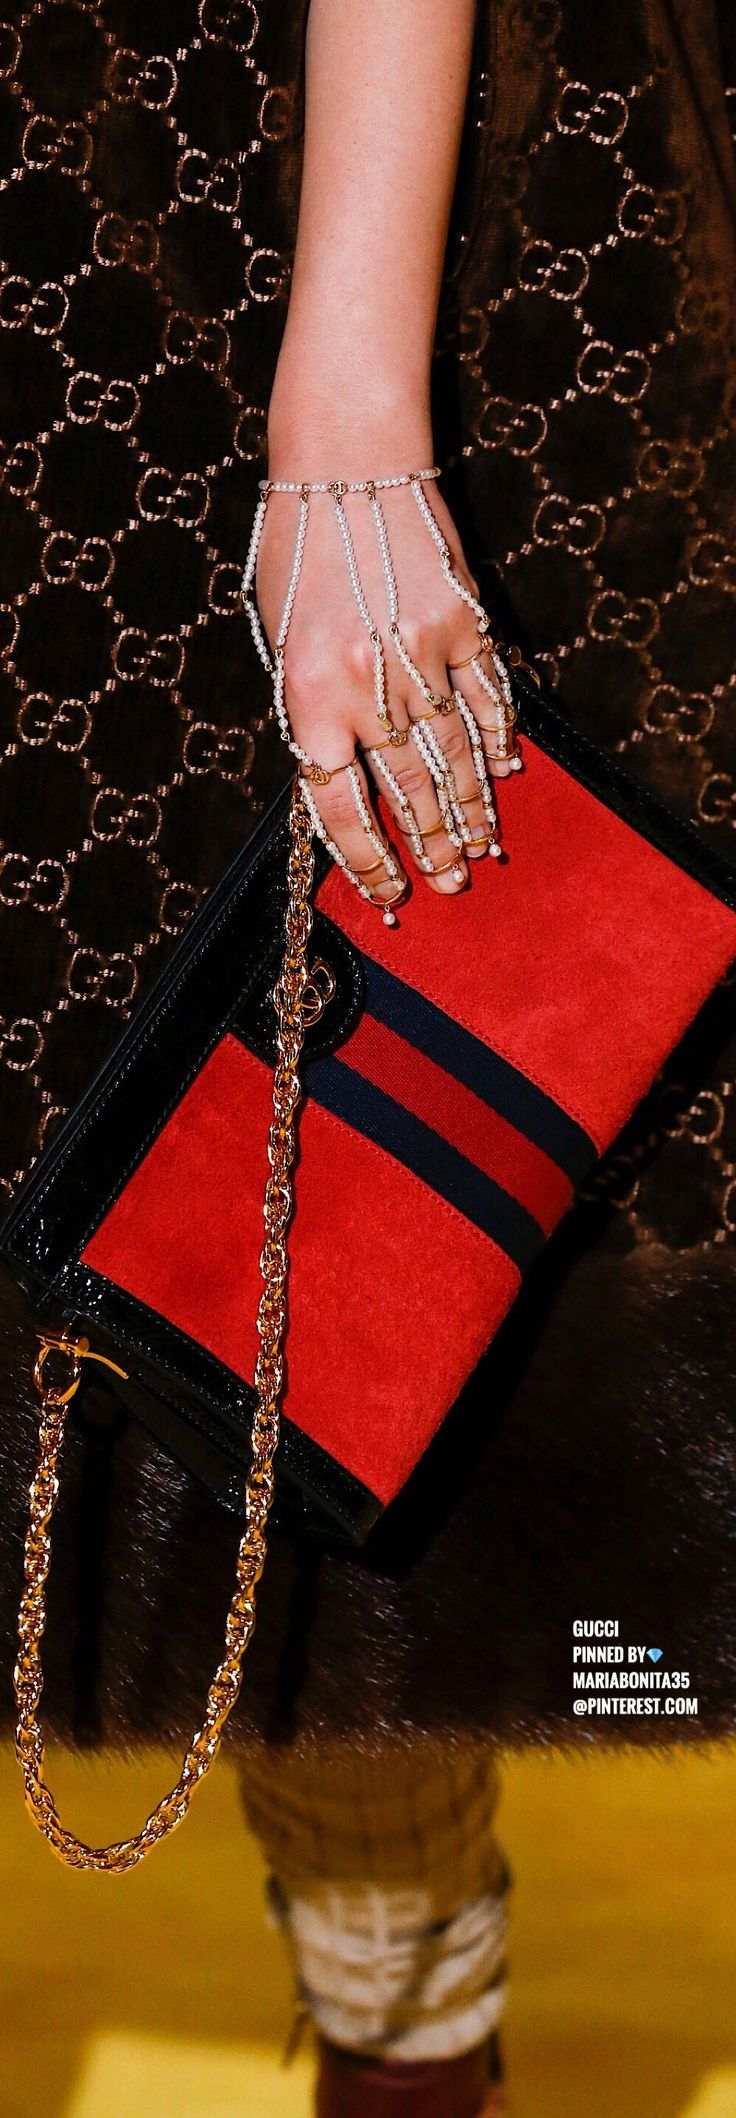 Gucci Collection Details